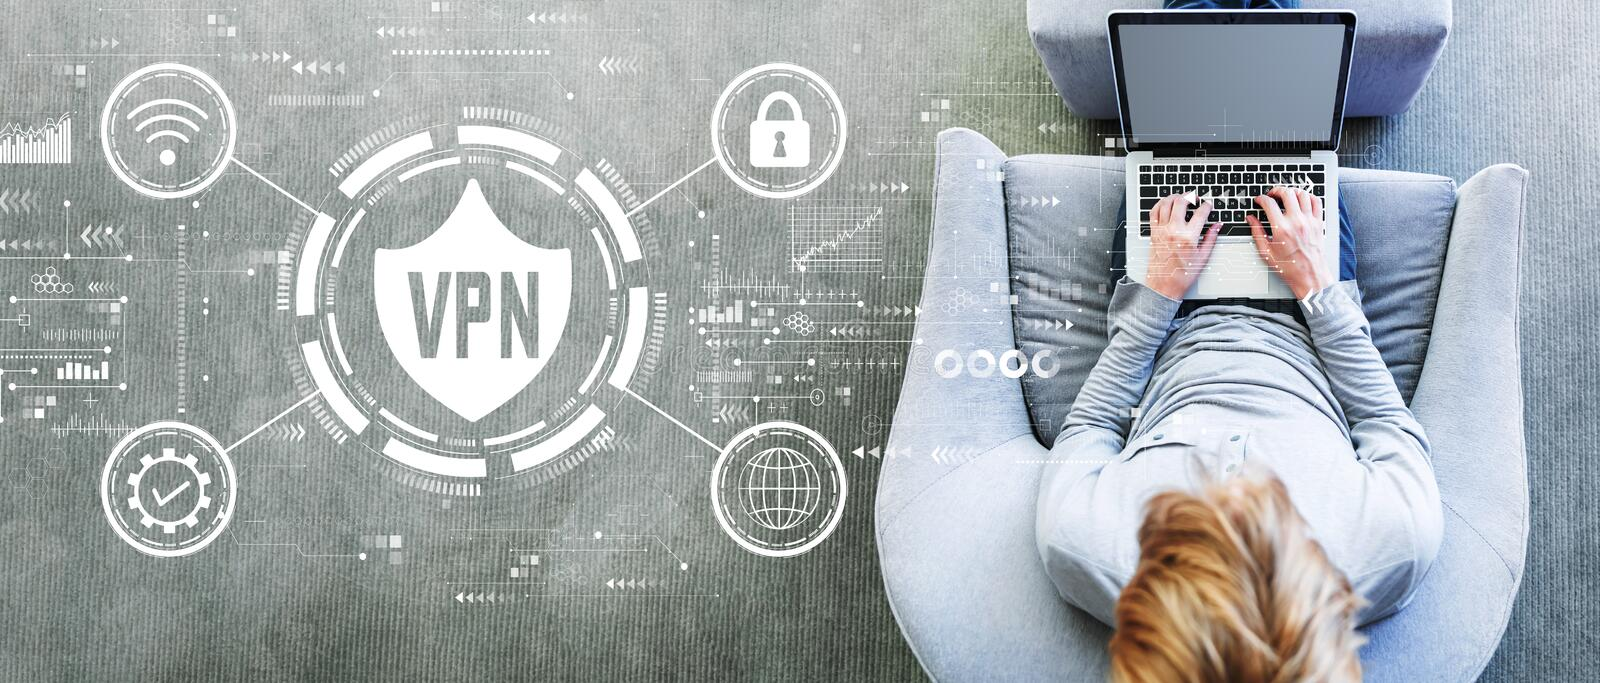 VPN concept with man using a laptop royalty free stock image